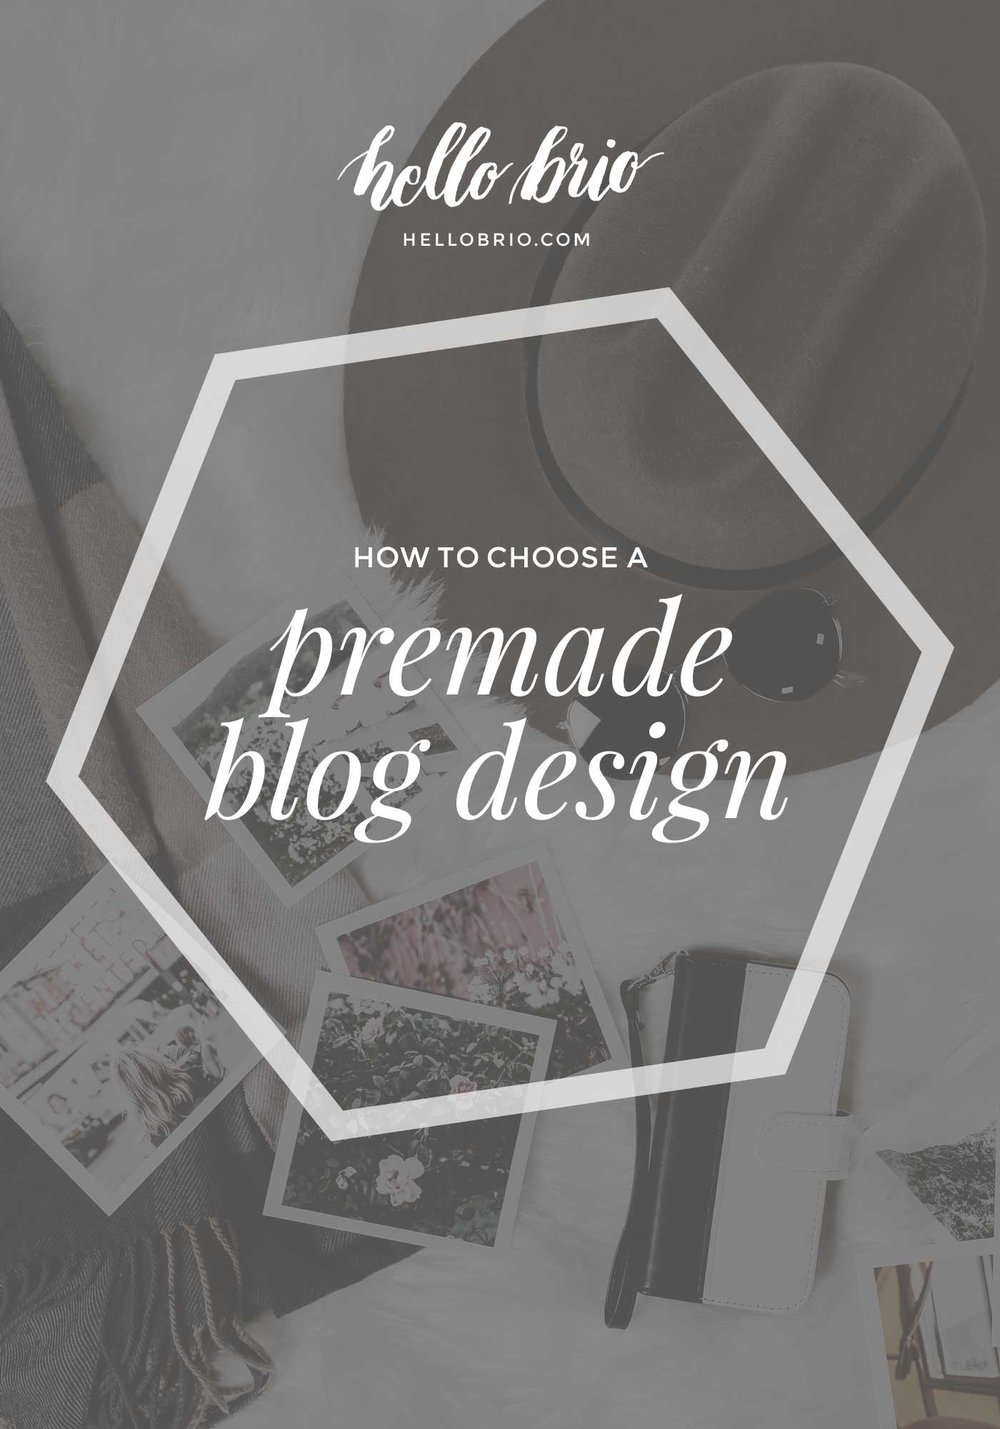 How to choose a premade blog design